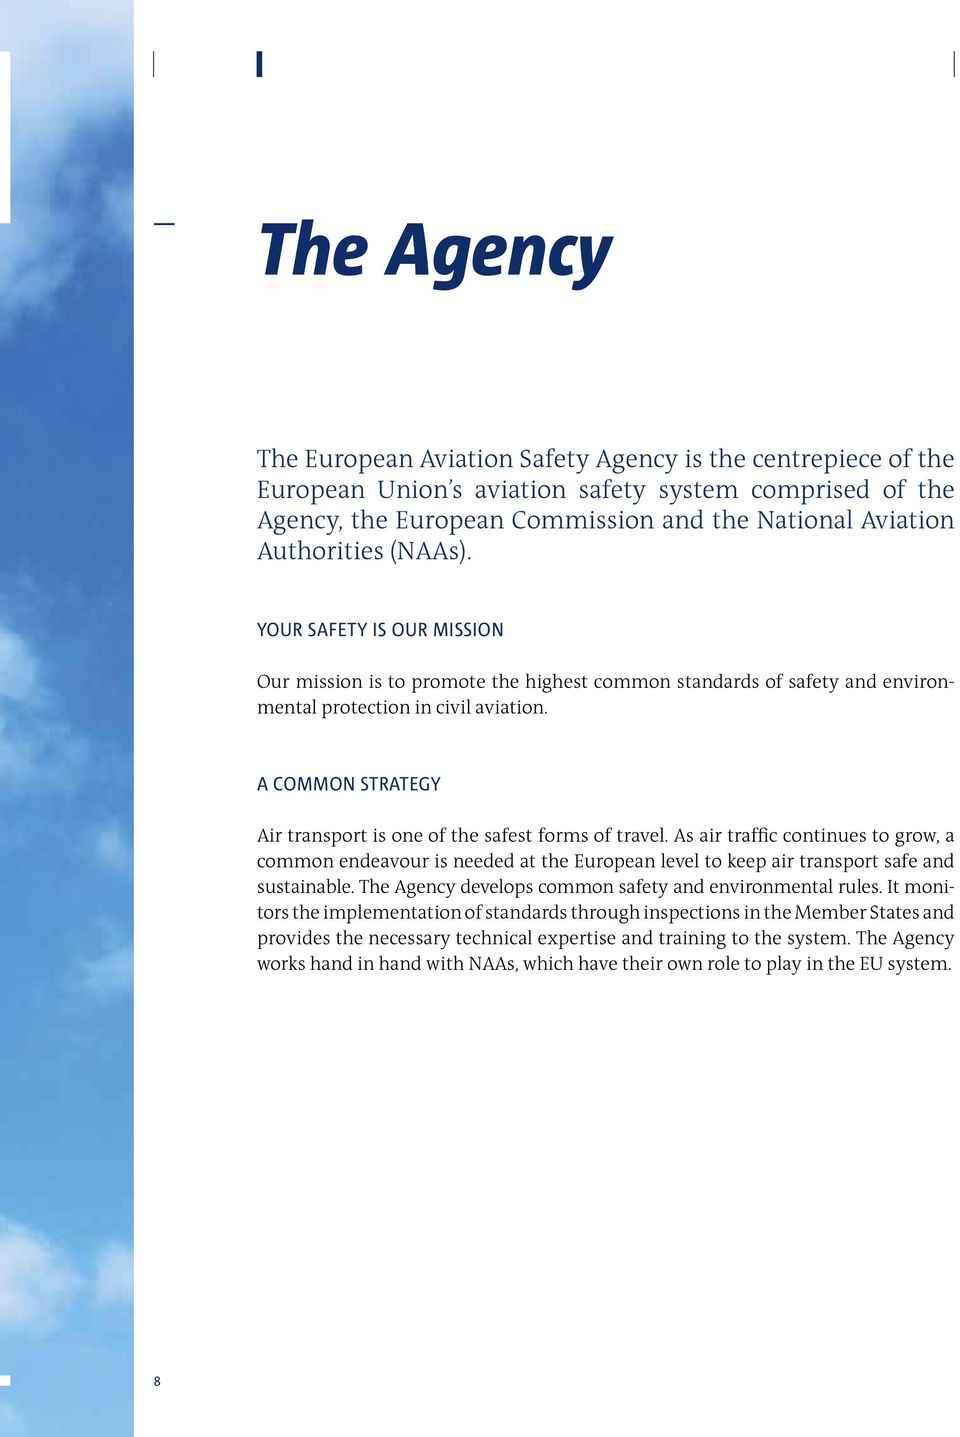 A common strategy Air transport is one of the safest forms of travel. As air traffic continues to grow, a common endeavour is needed at the European level to keep air transport safe and sustainable.